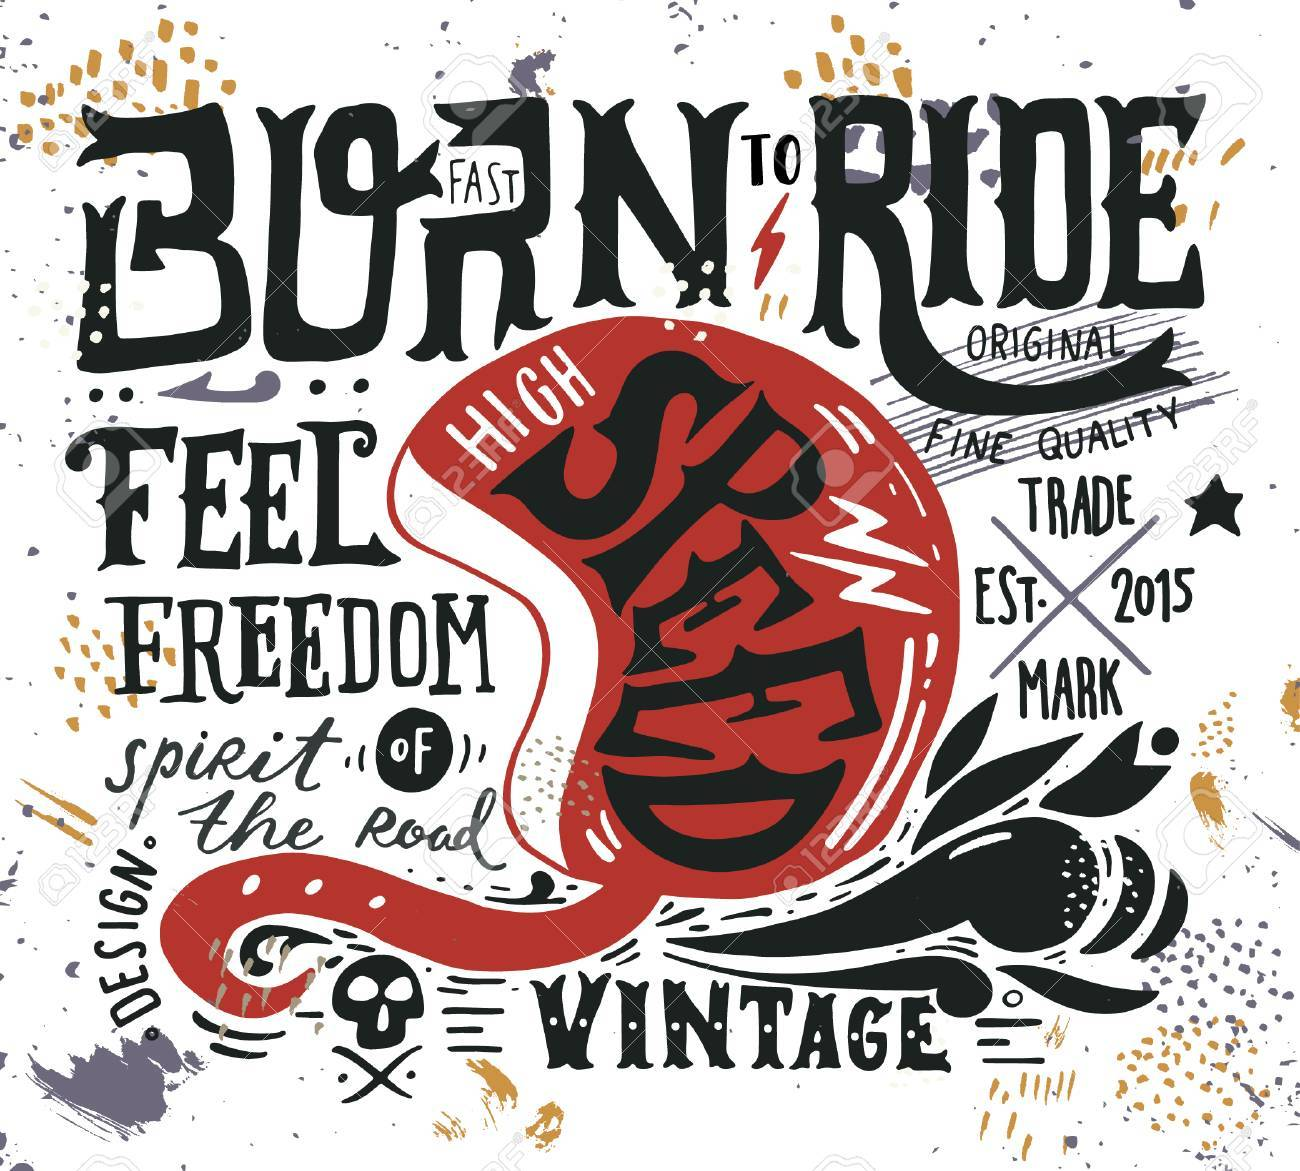 Hand drawn grunge vintage illustration with hand lettering and a retro helmet, skull and decoration elements. This illustration can be used as a print on t-shirts and bags, stationary or as a poster. - 54667539